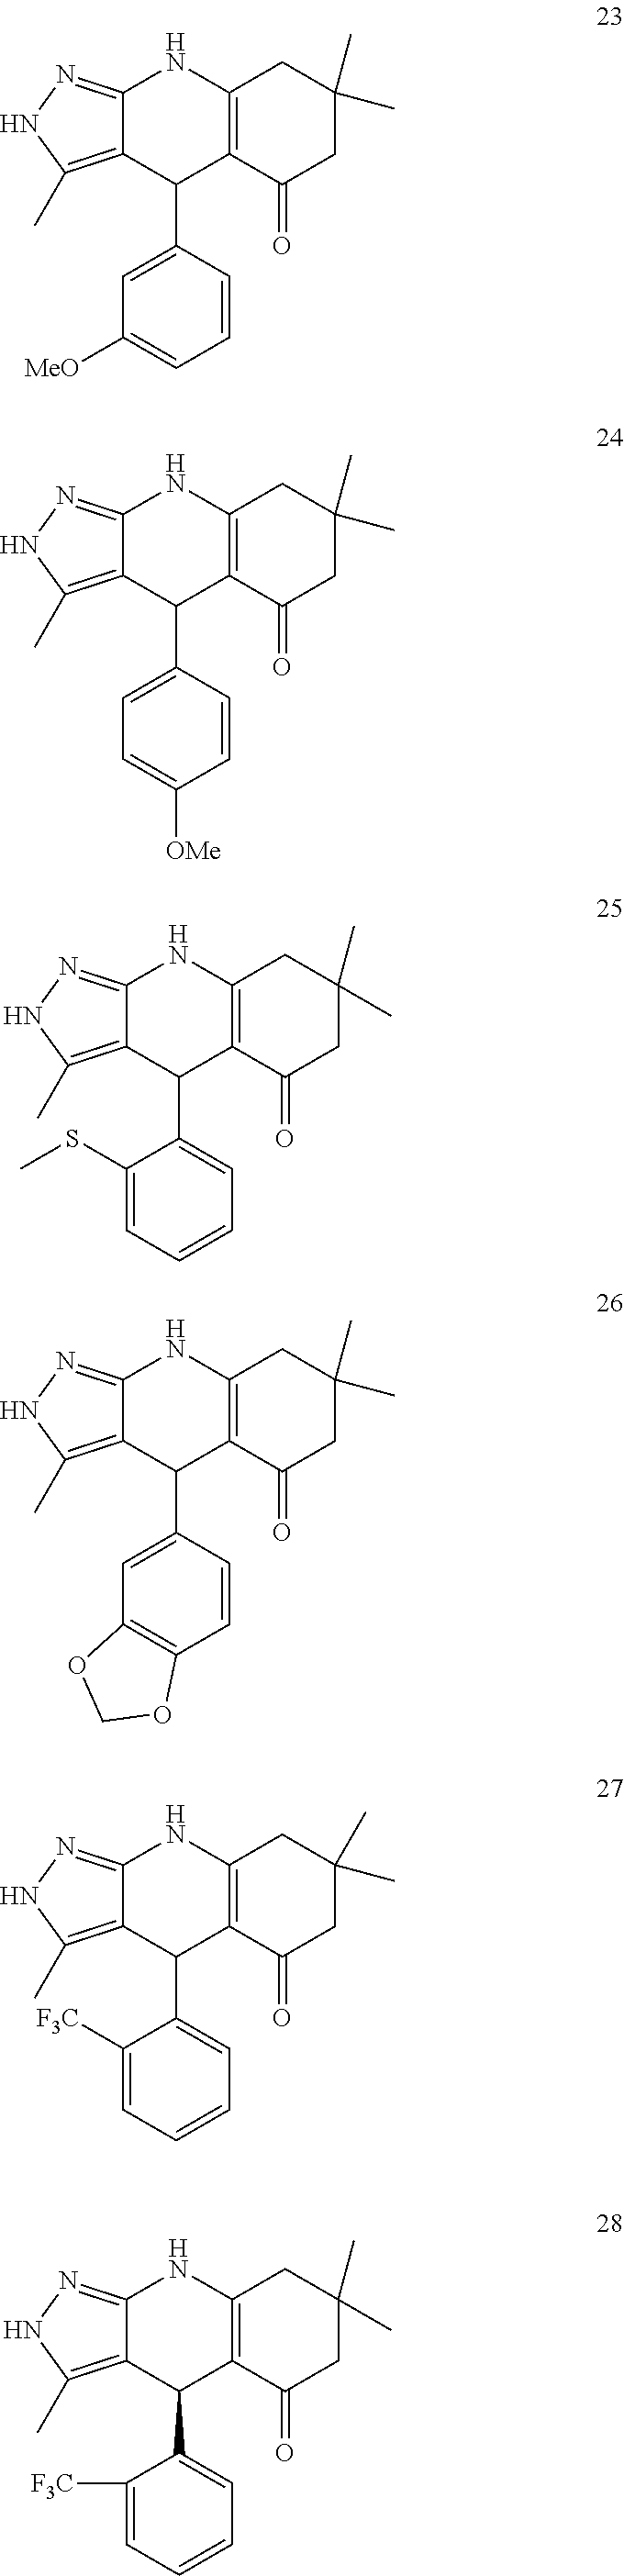 Us9096594b2 Kinase Inhibitors And Methods Of Use Thereof Google Rsk2 Switch Wiring Diagram Figure Us09096594 20150804 C00038